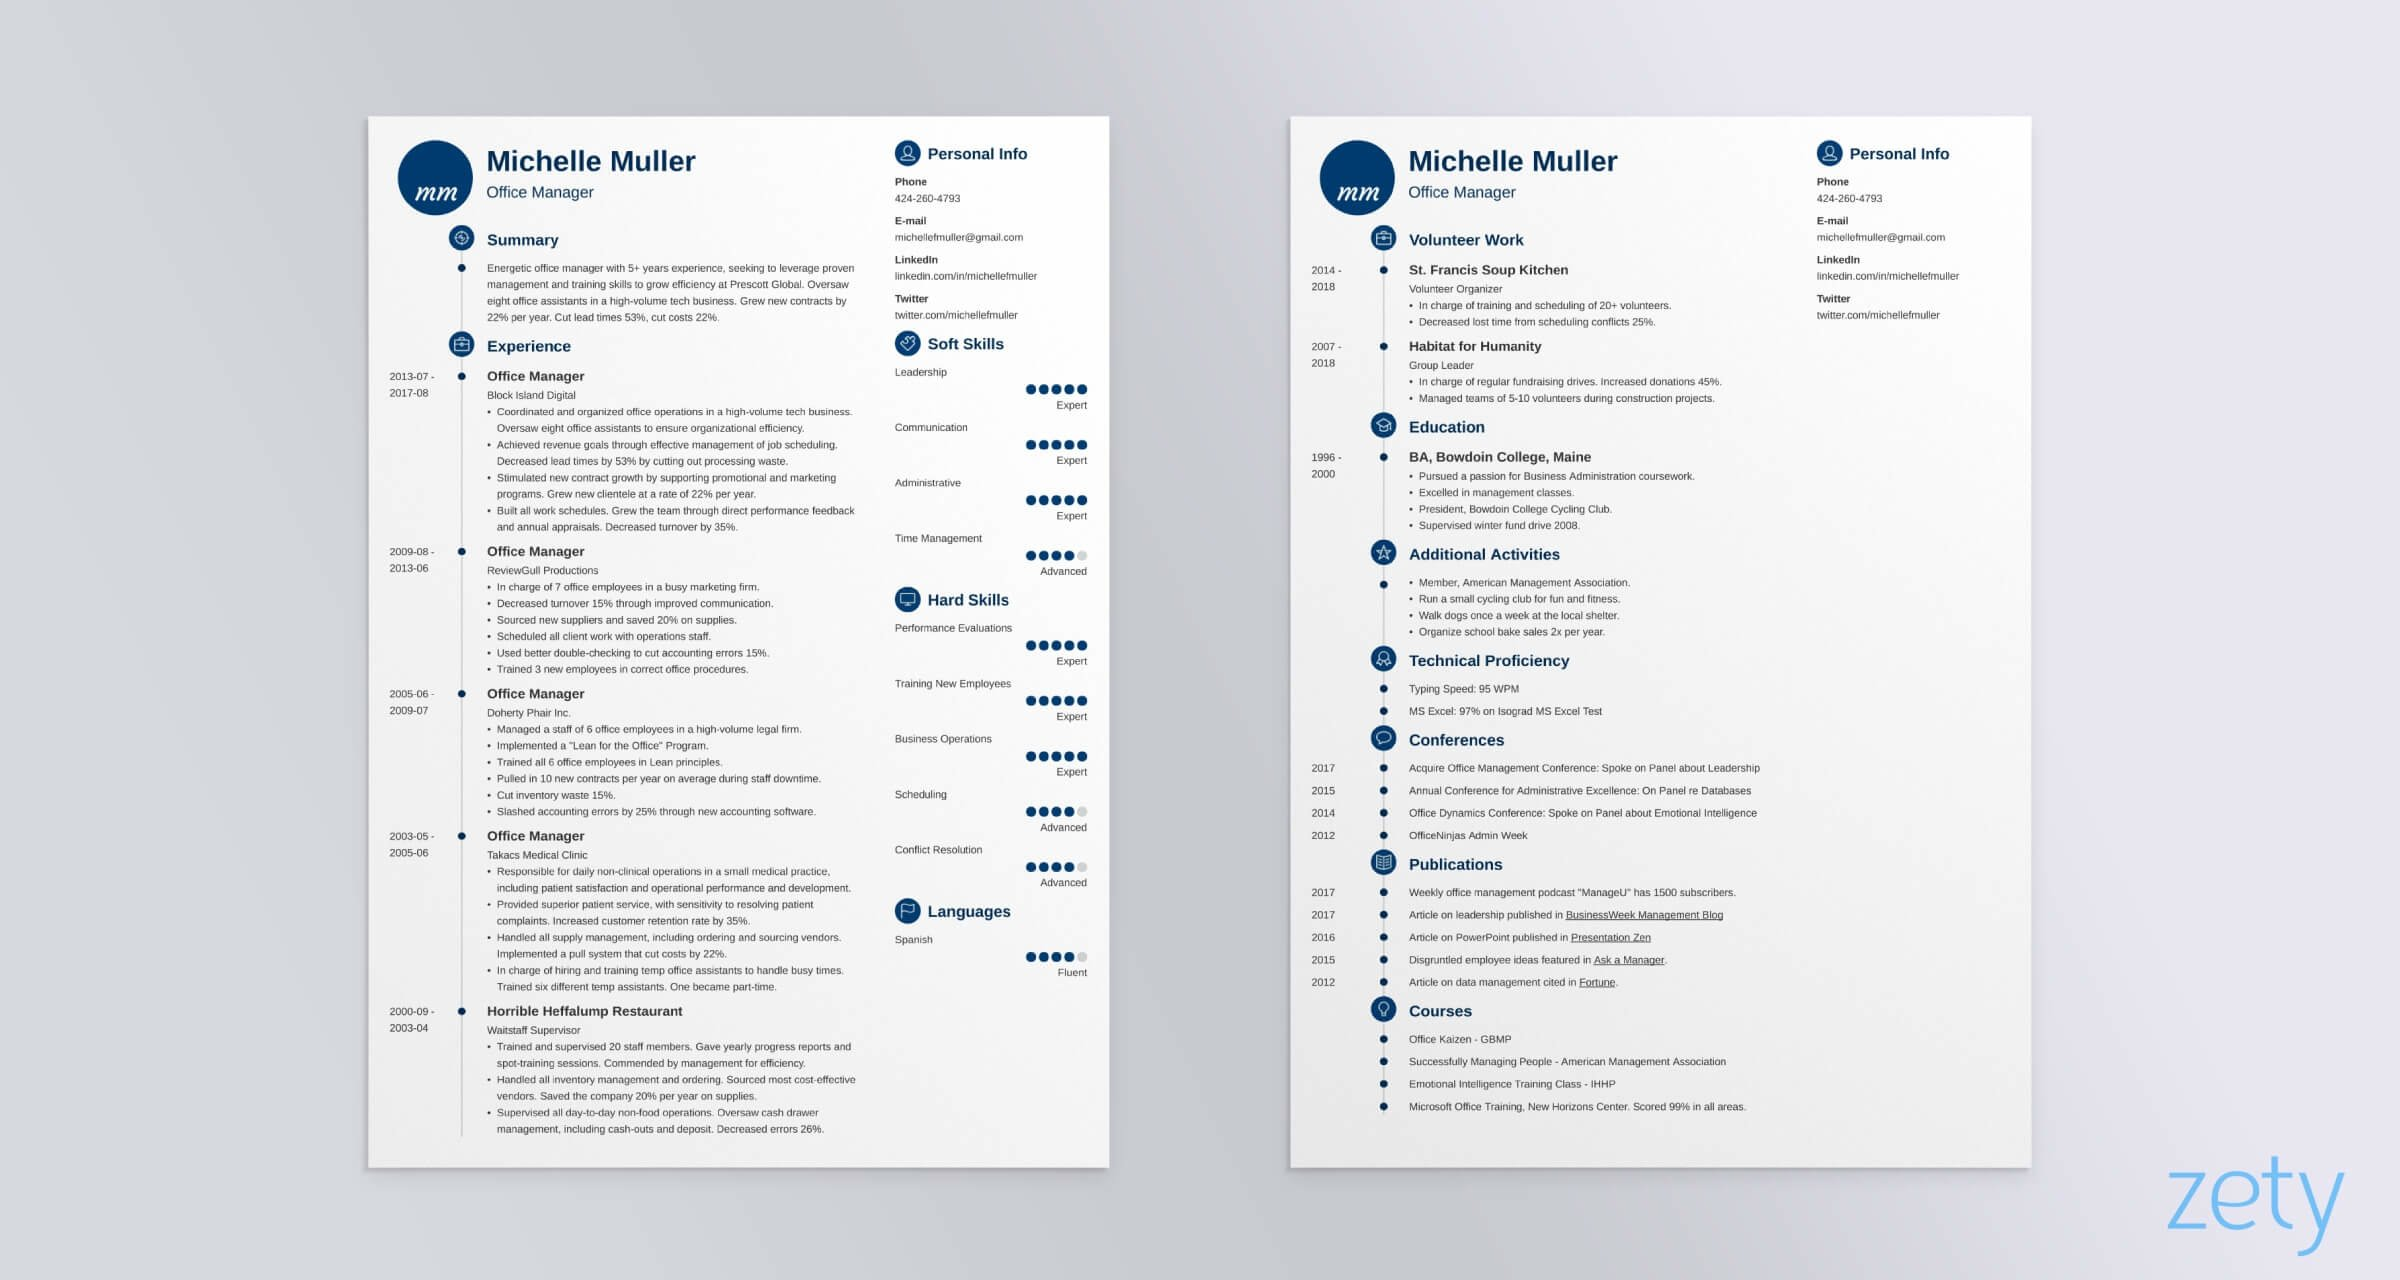 resume it crush your chances format tips one vs two primo1 proven record federal style Resume One Page Resume Vs Two Page